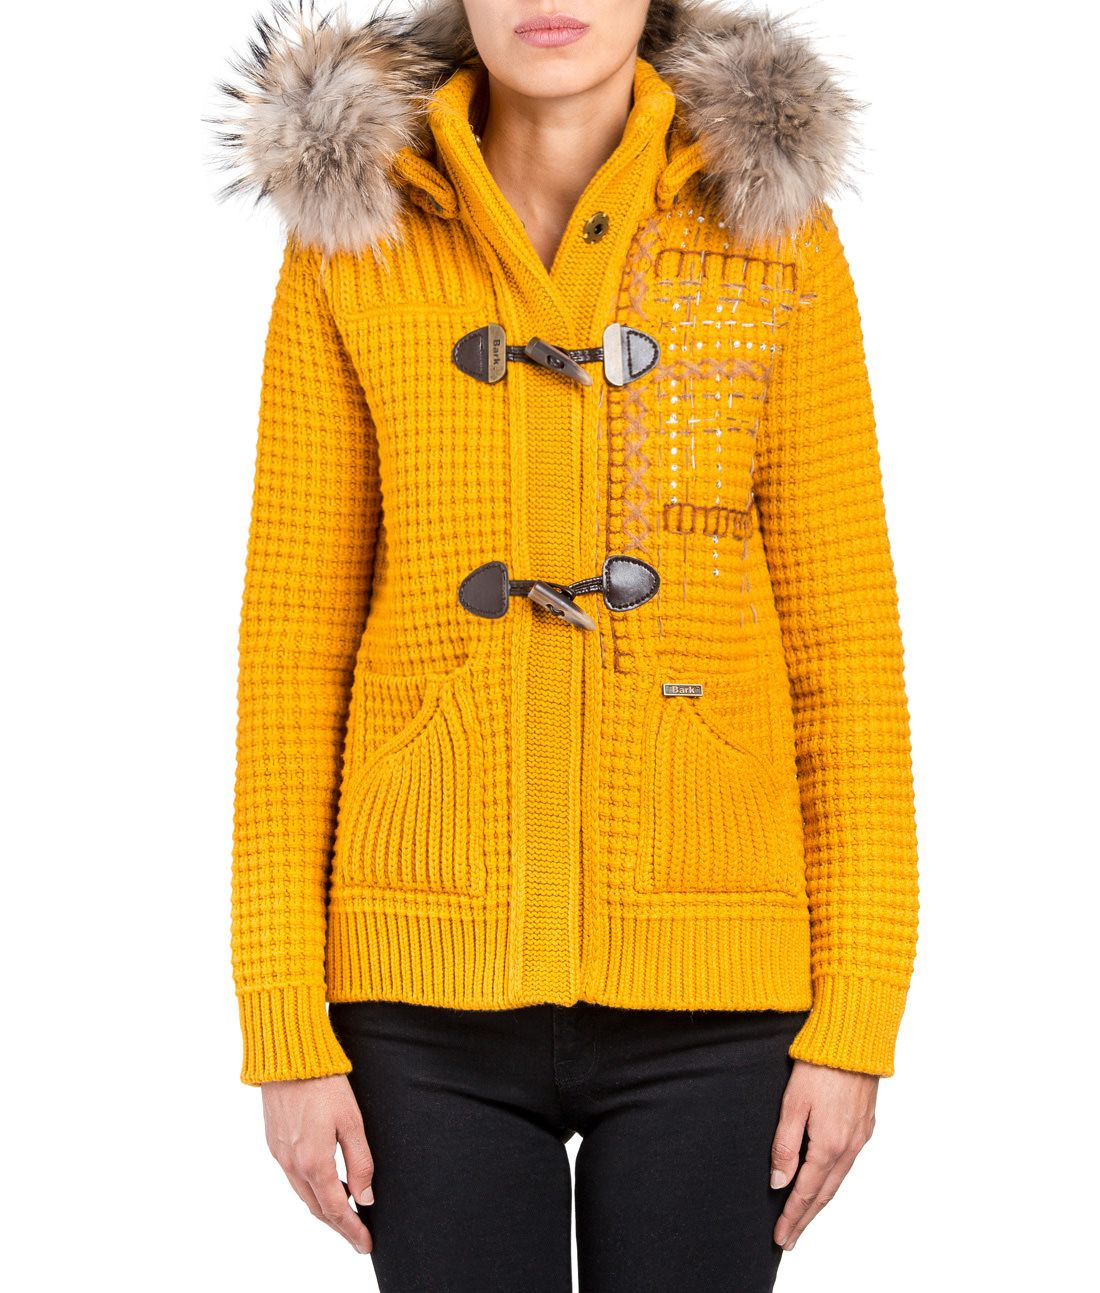 BARK: EMBROIDERED SHORT DUFFLE COAT WITH MOURMASKY MUSTARD | On me ...